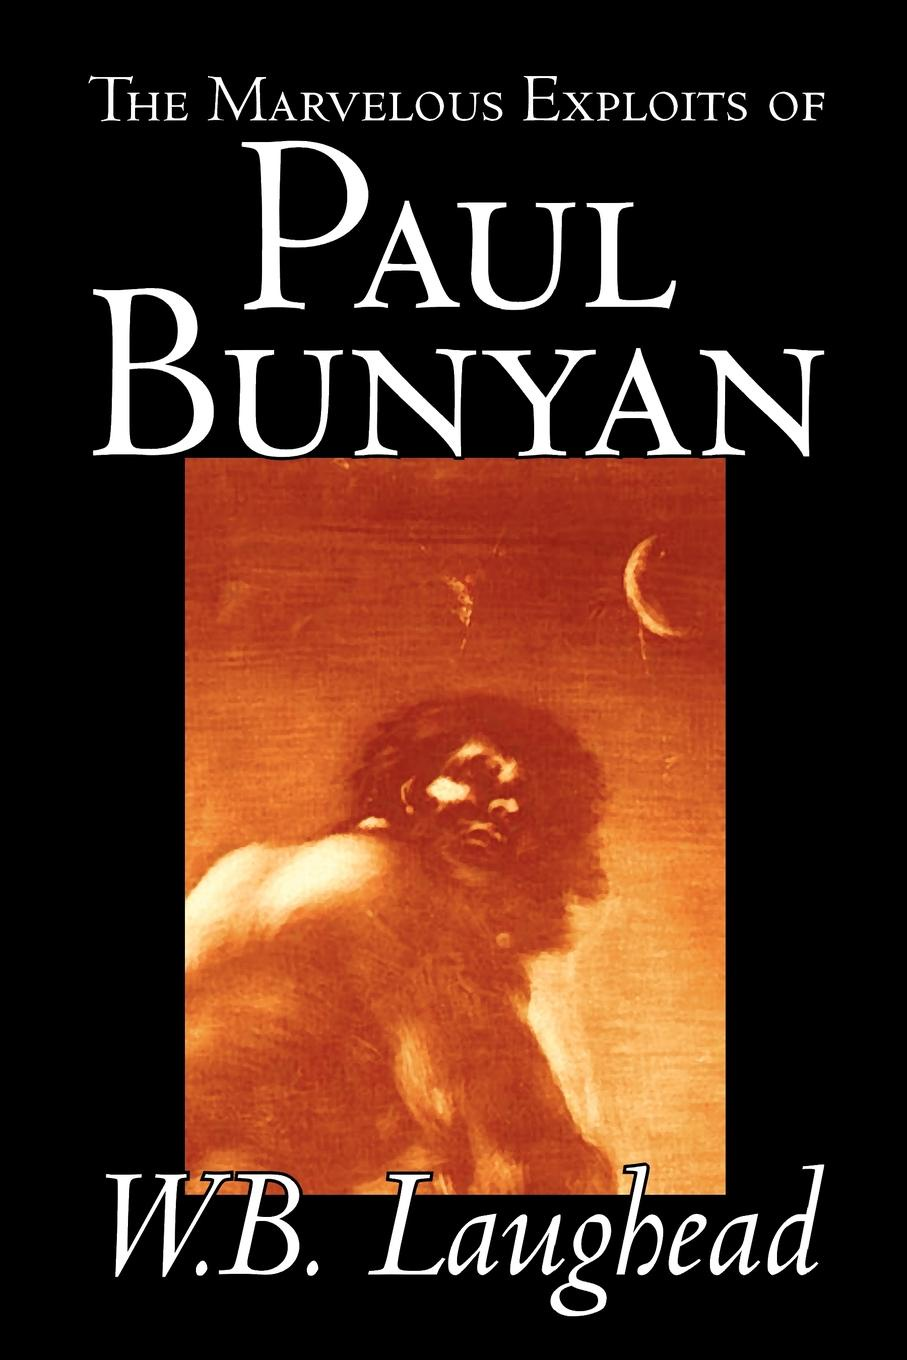 W. B. Laughead The Marvelous Exploits of Paul Bunyan by W. B. Laughead, Social Science, Folklore & Mythology paul celiere cashel hoey john lillie the startling exploits of dr j b quies